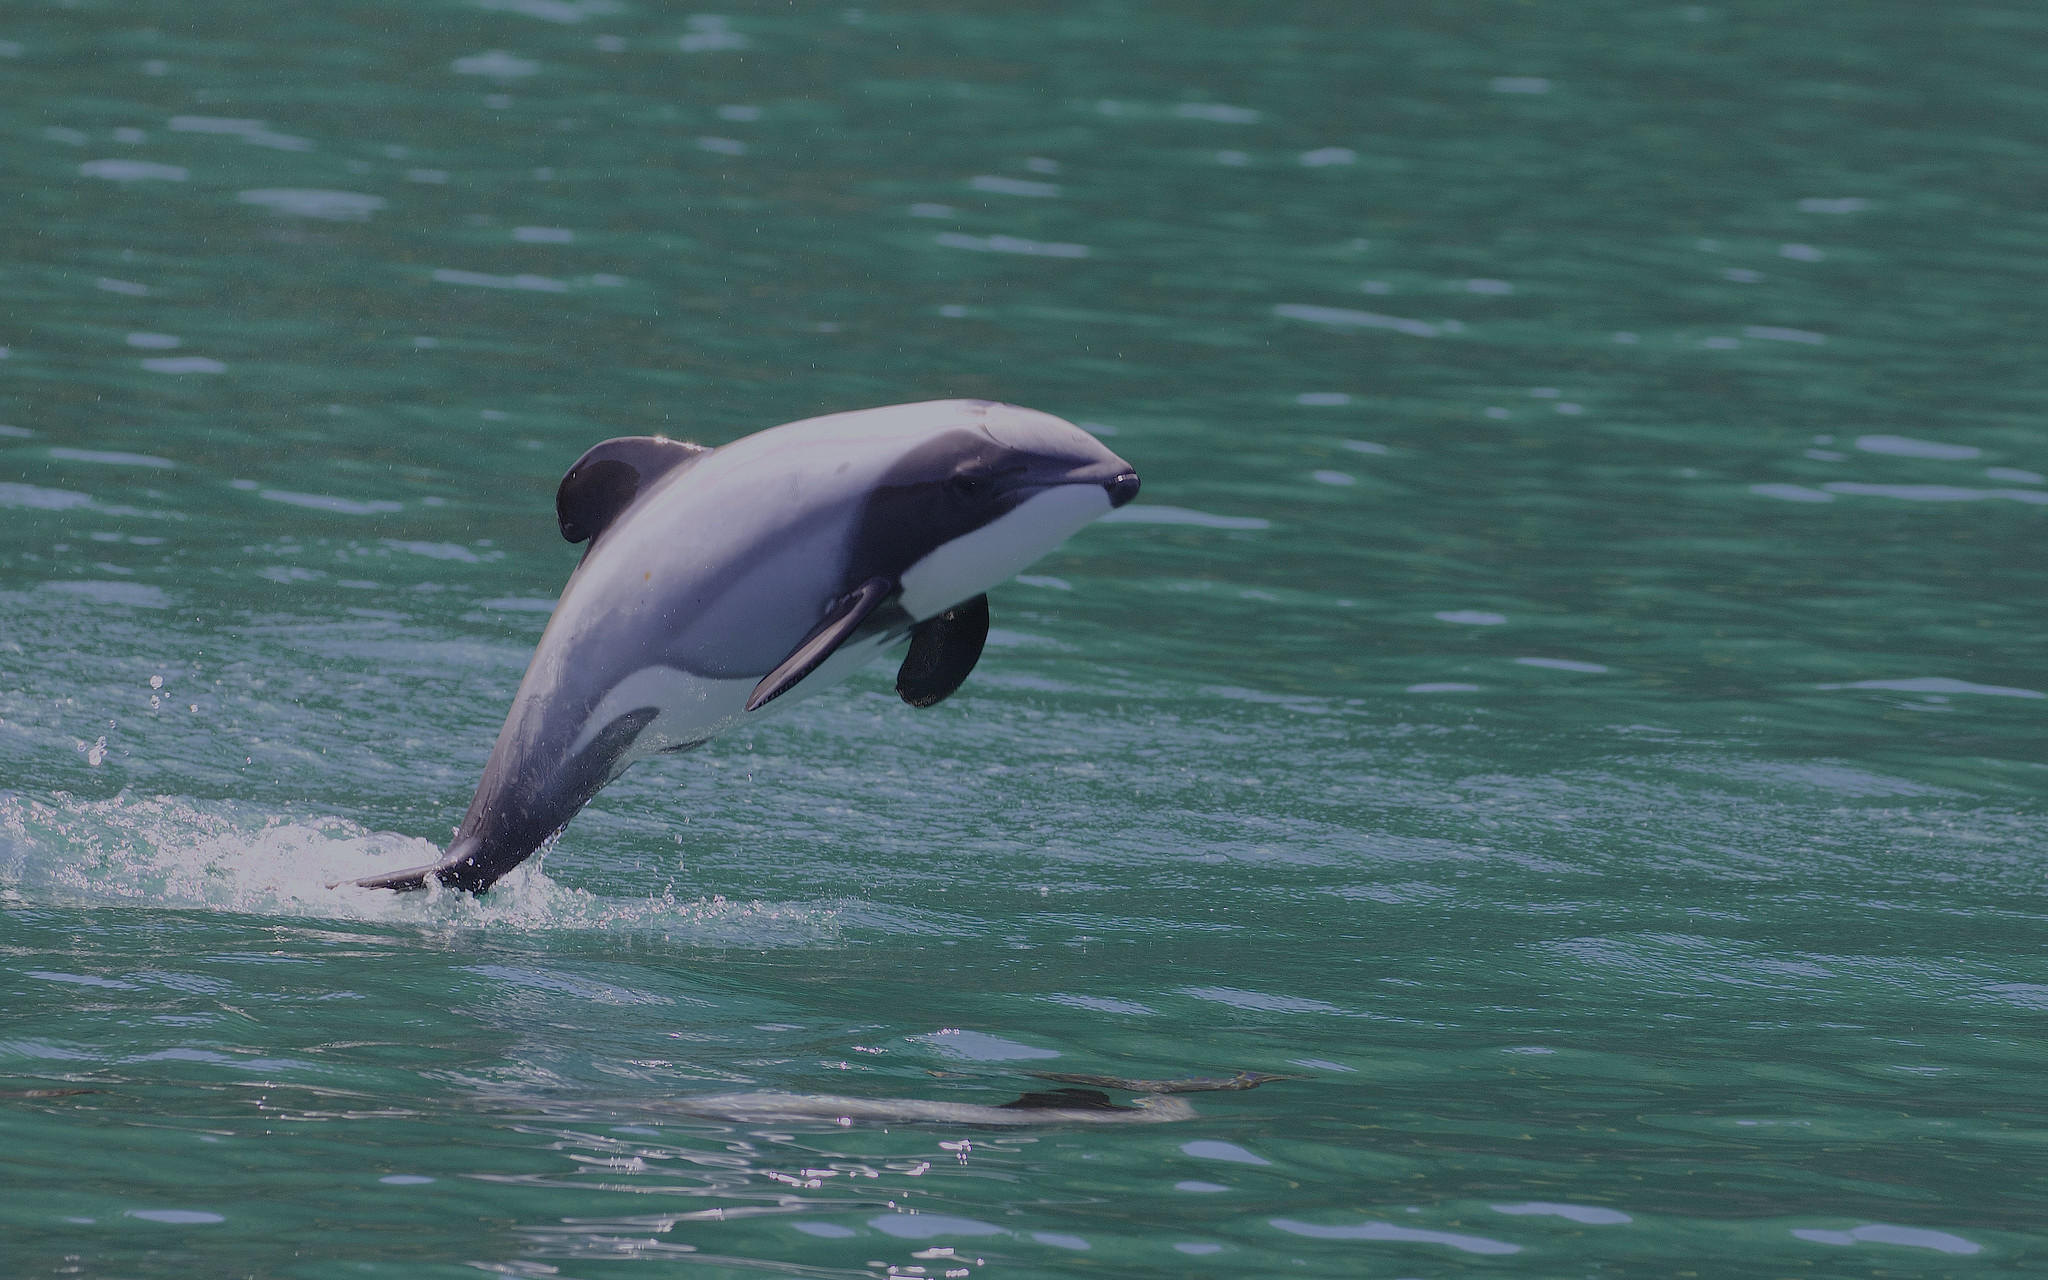 Featured image: Dolphin researchers say NZ's proposed protection plan is flawed and misleading